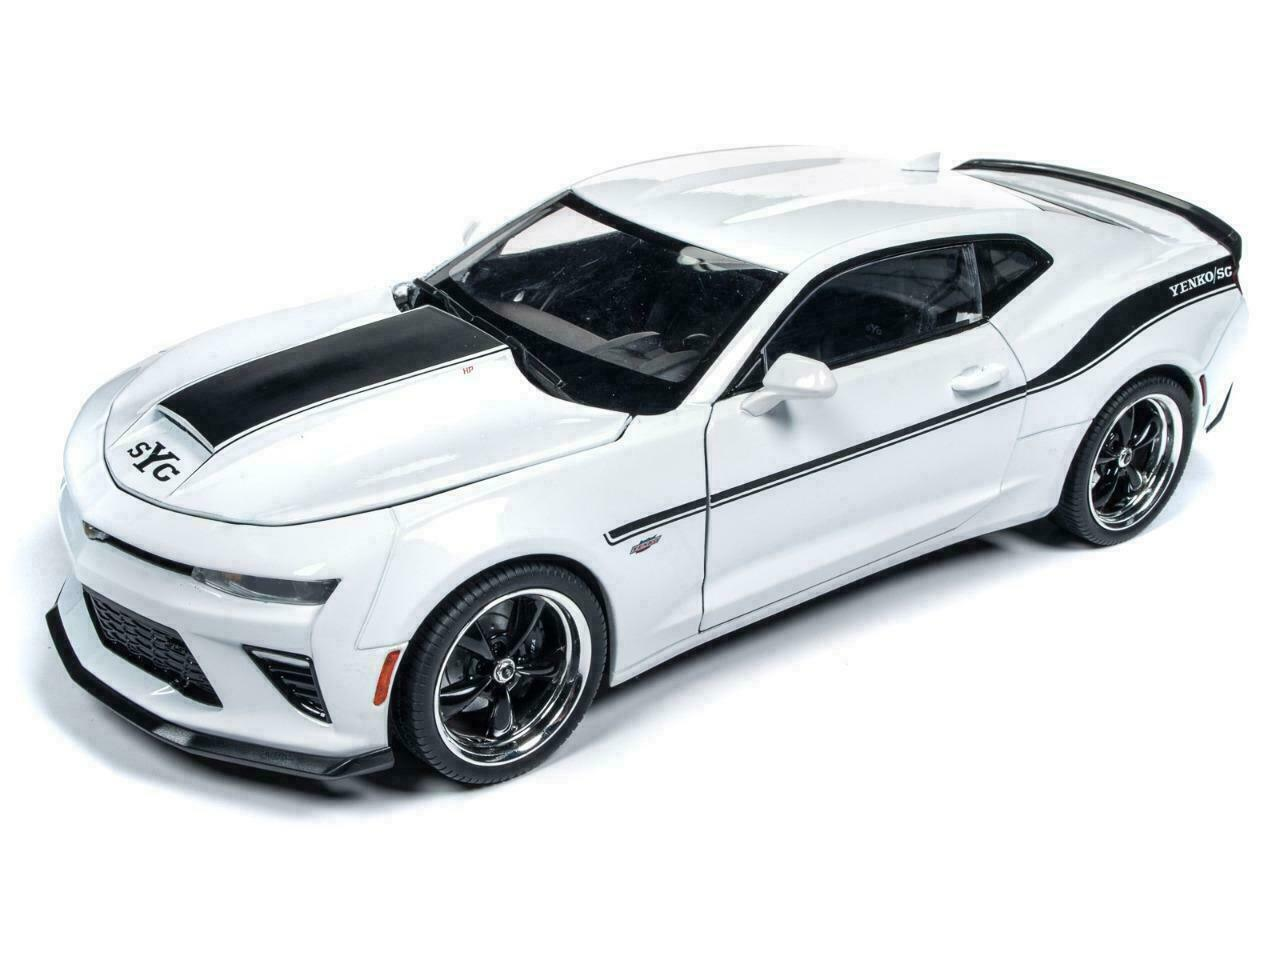 Auto World 1 18 Muscle Cars U.S.A. 2018 Yenko Stage II Chevrolet Camaro Diecast